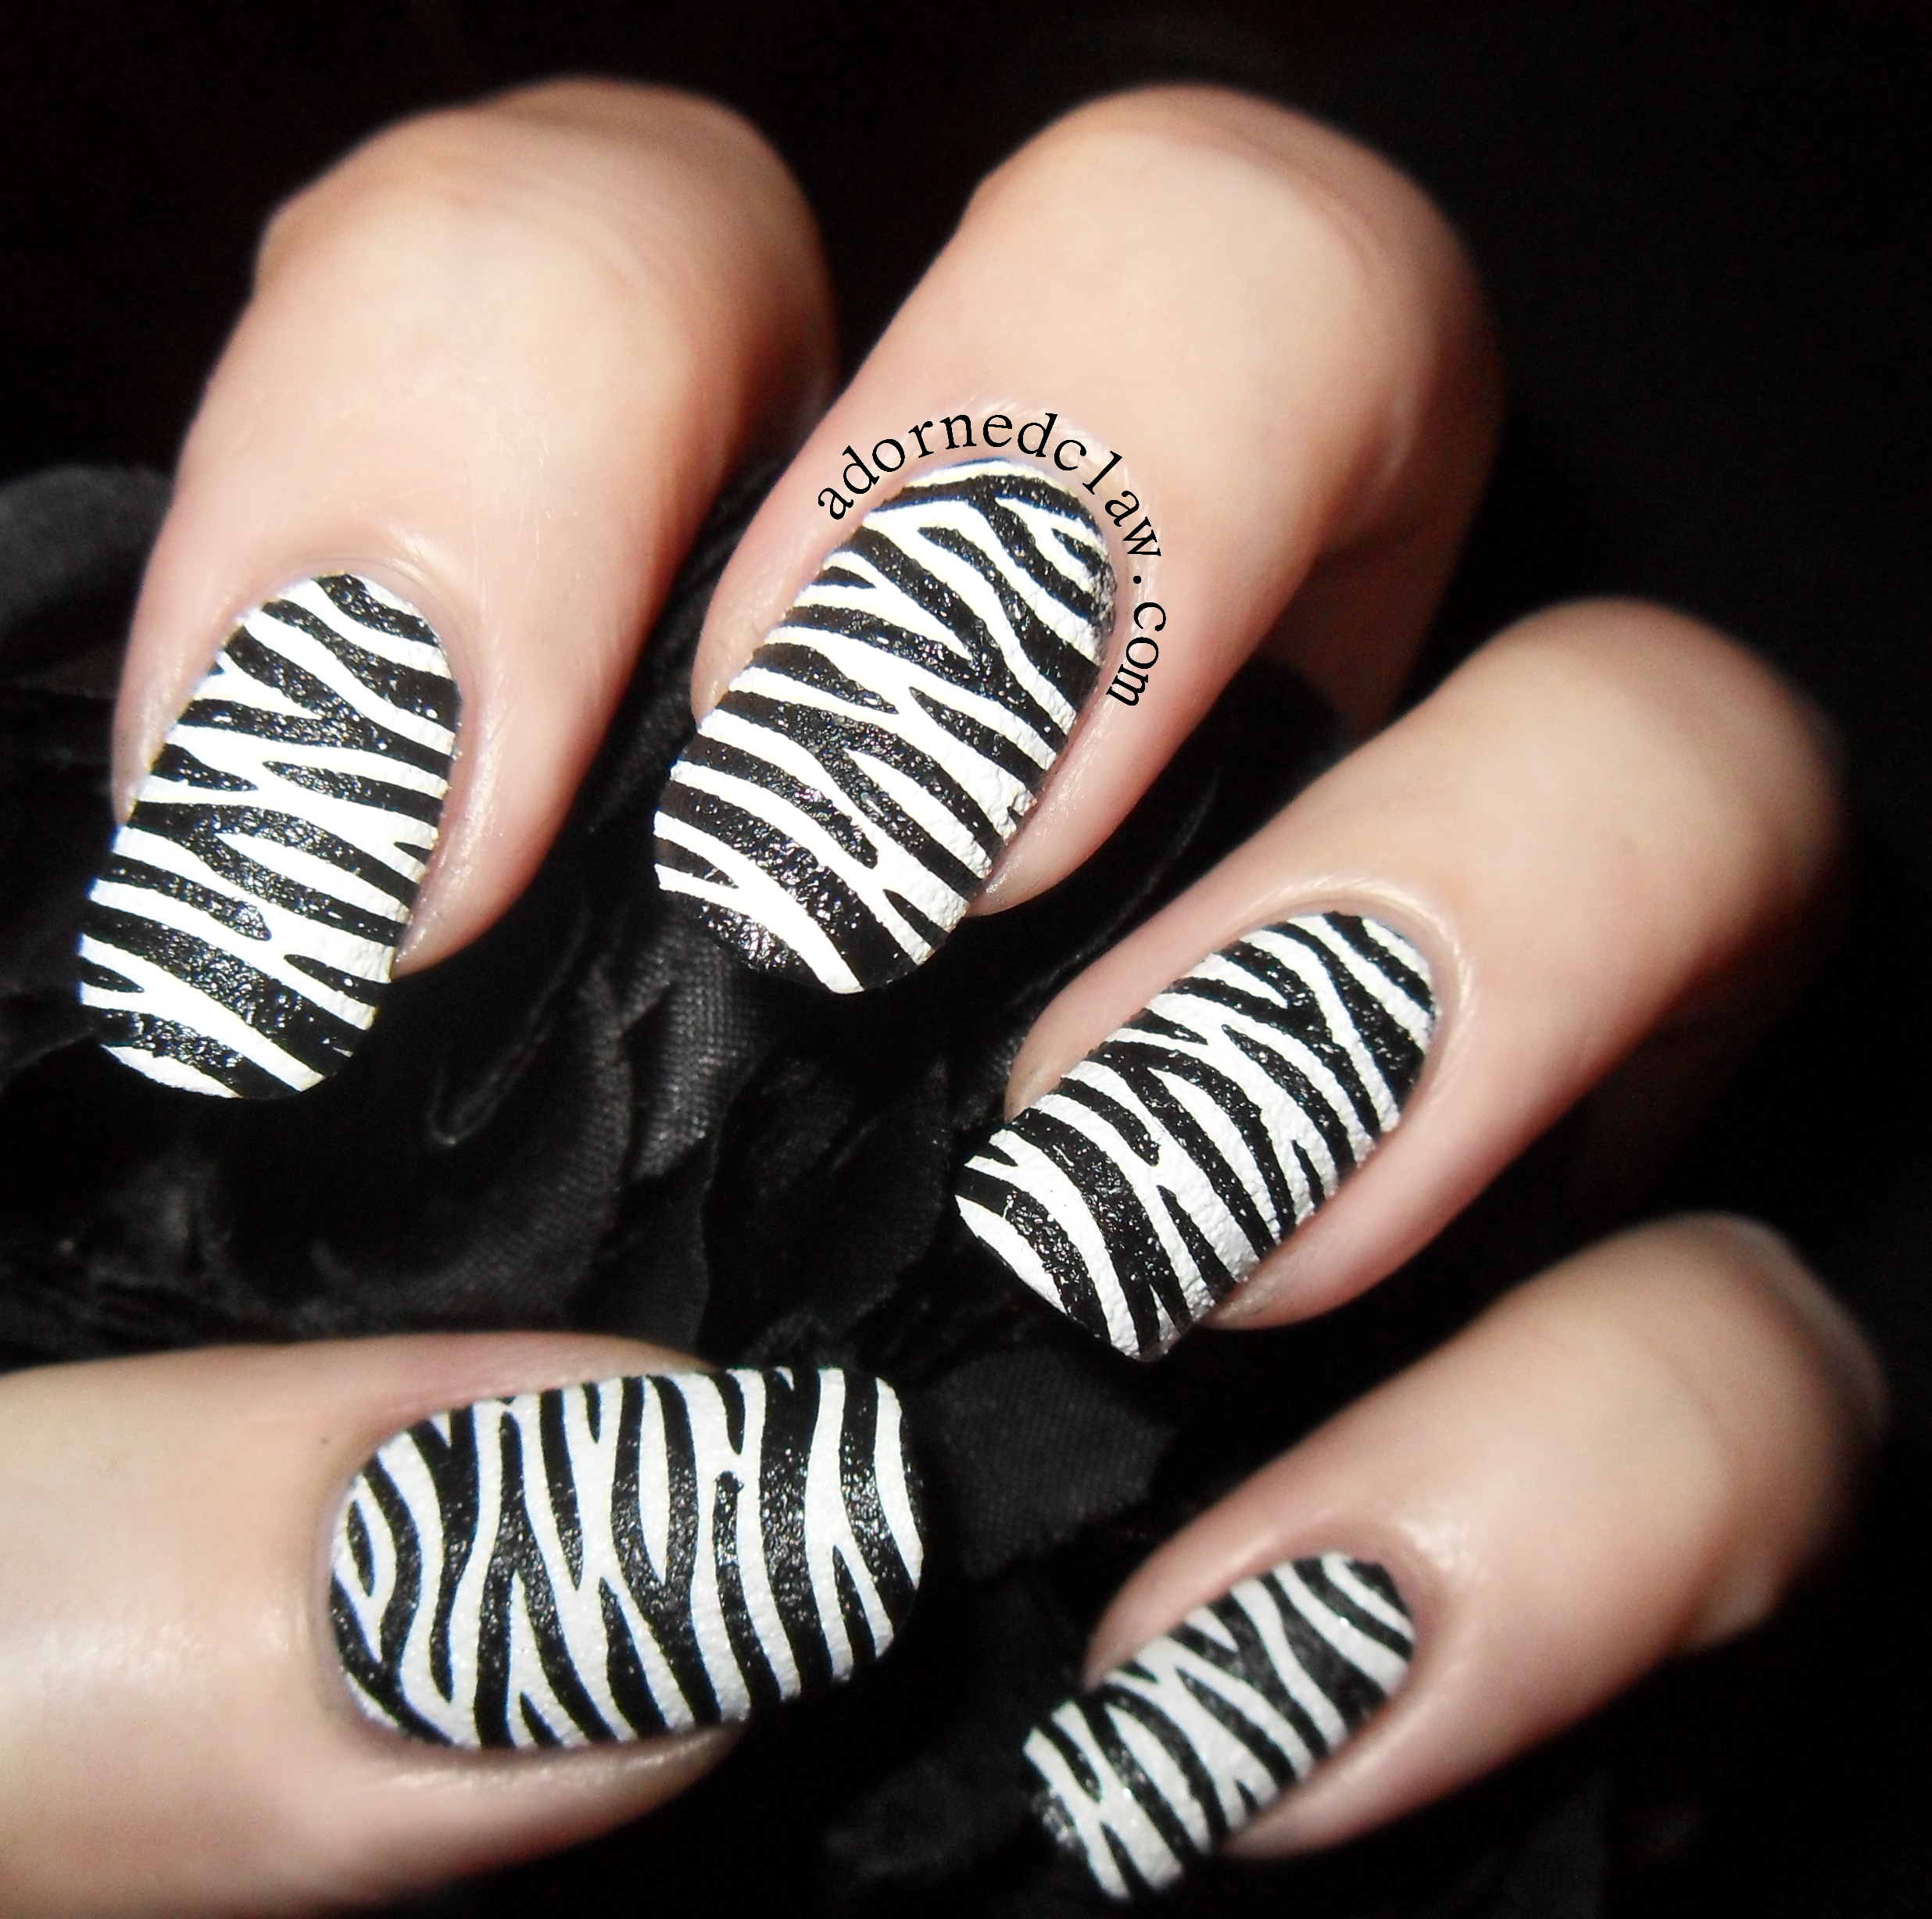 Textured Zebra Nails The Adorned Claw